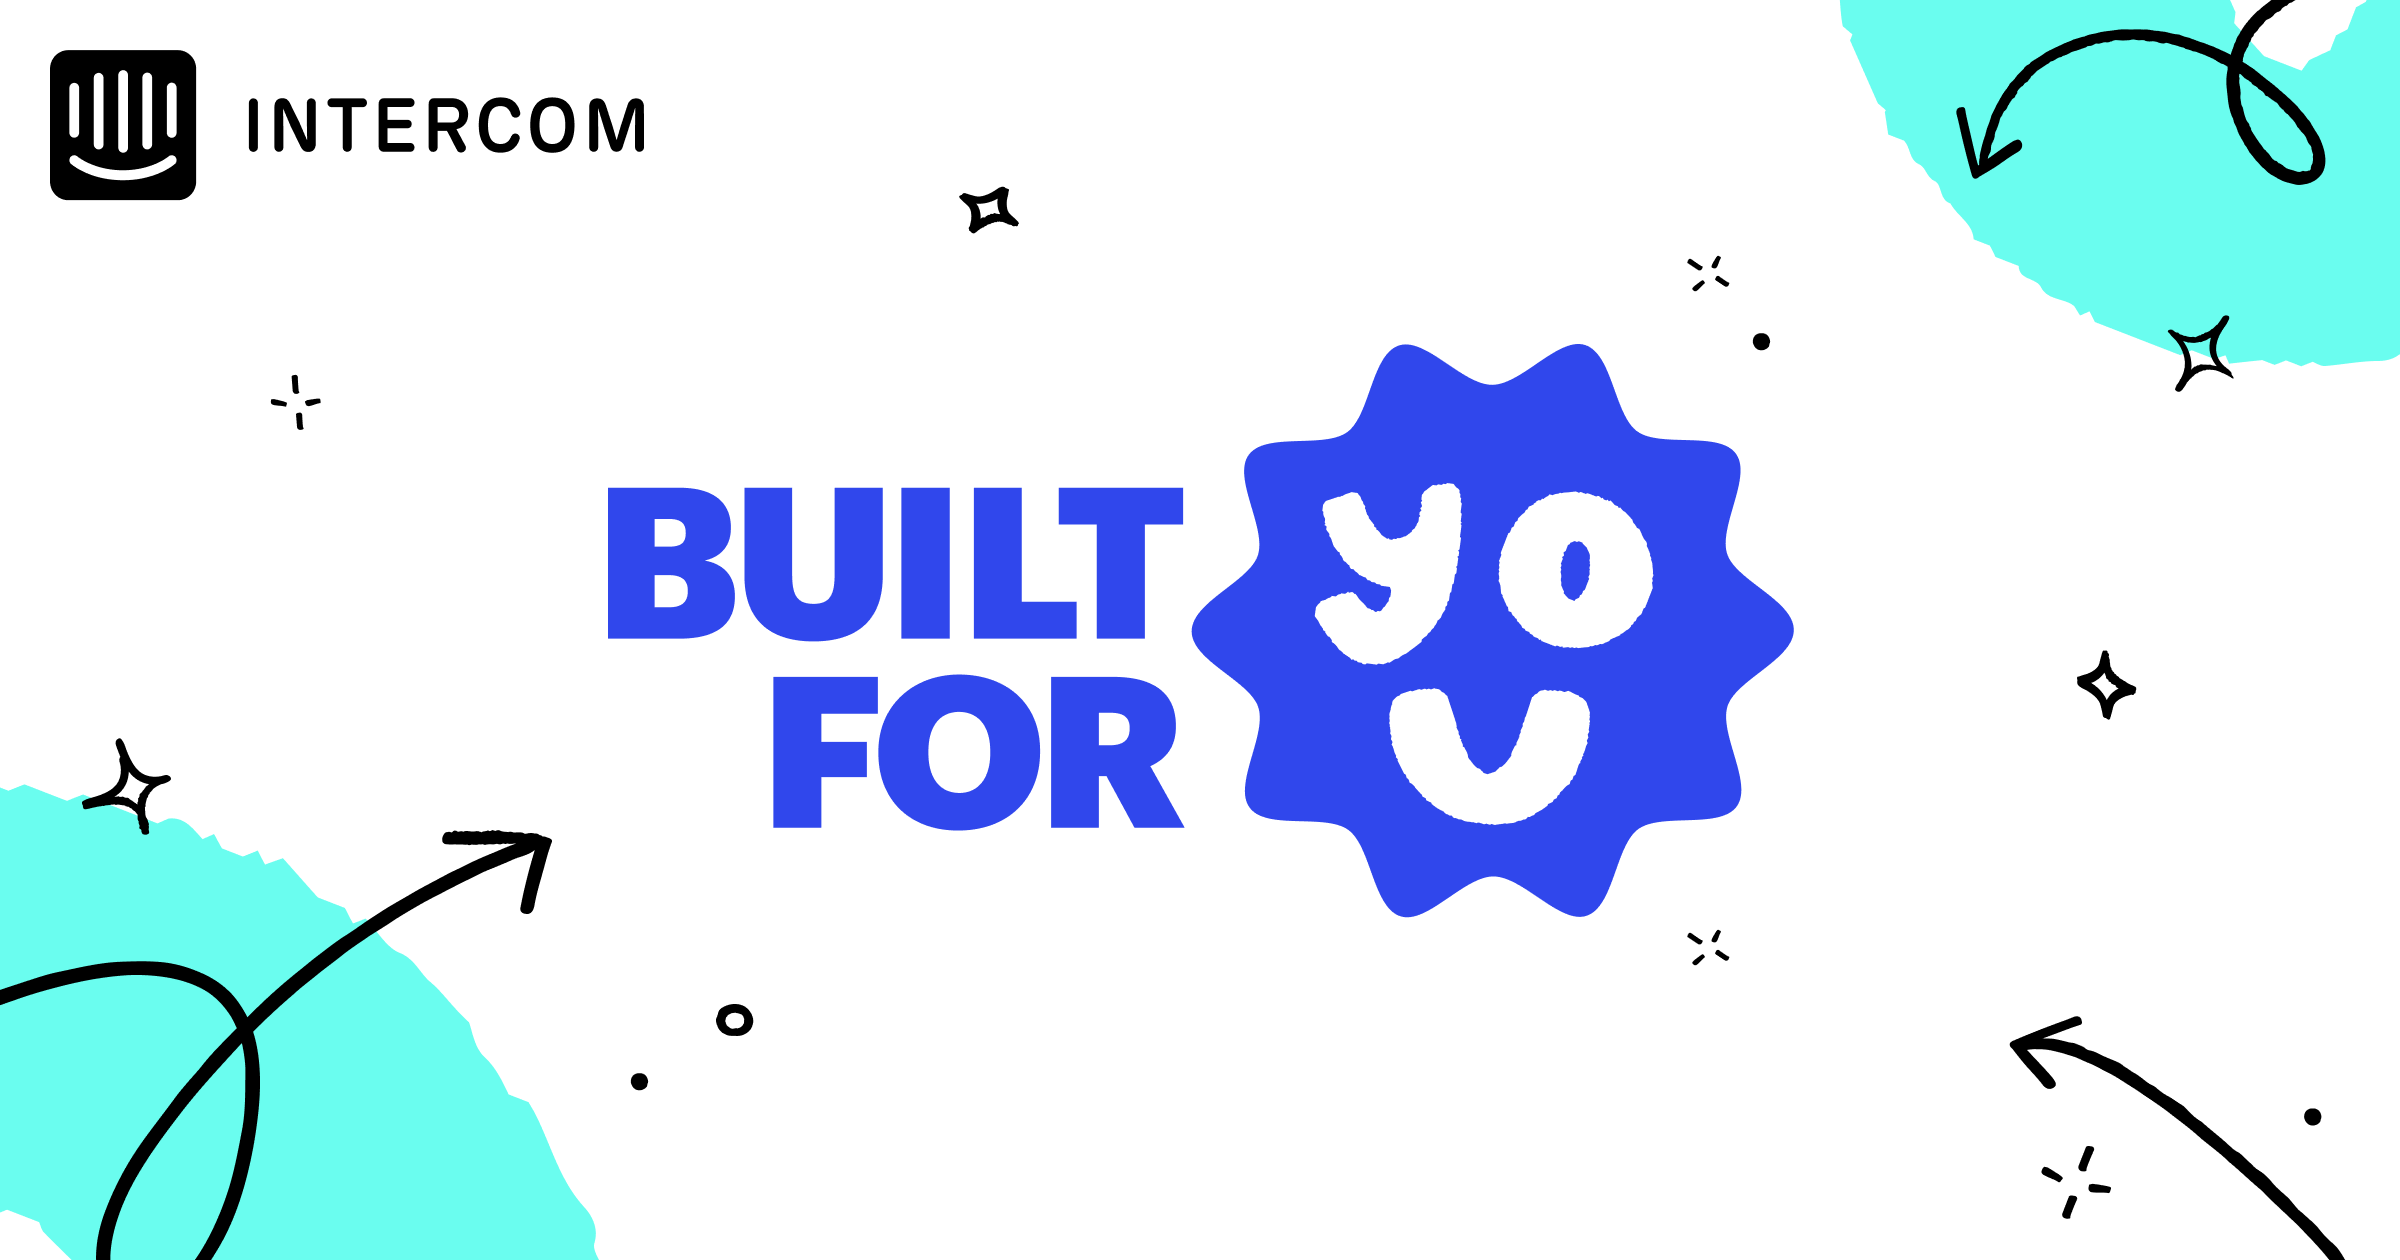 Built for you: Powerful updates to Series, Banners, Resolution Bot, and more to help you stay personal at scale